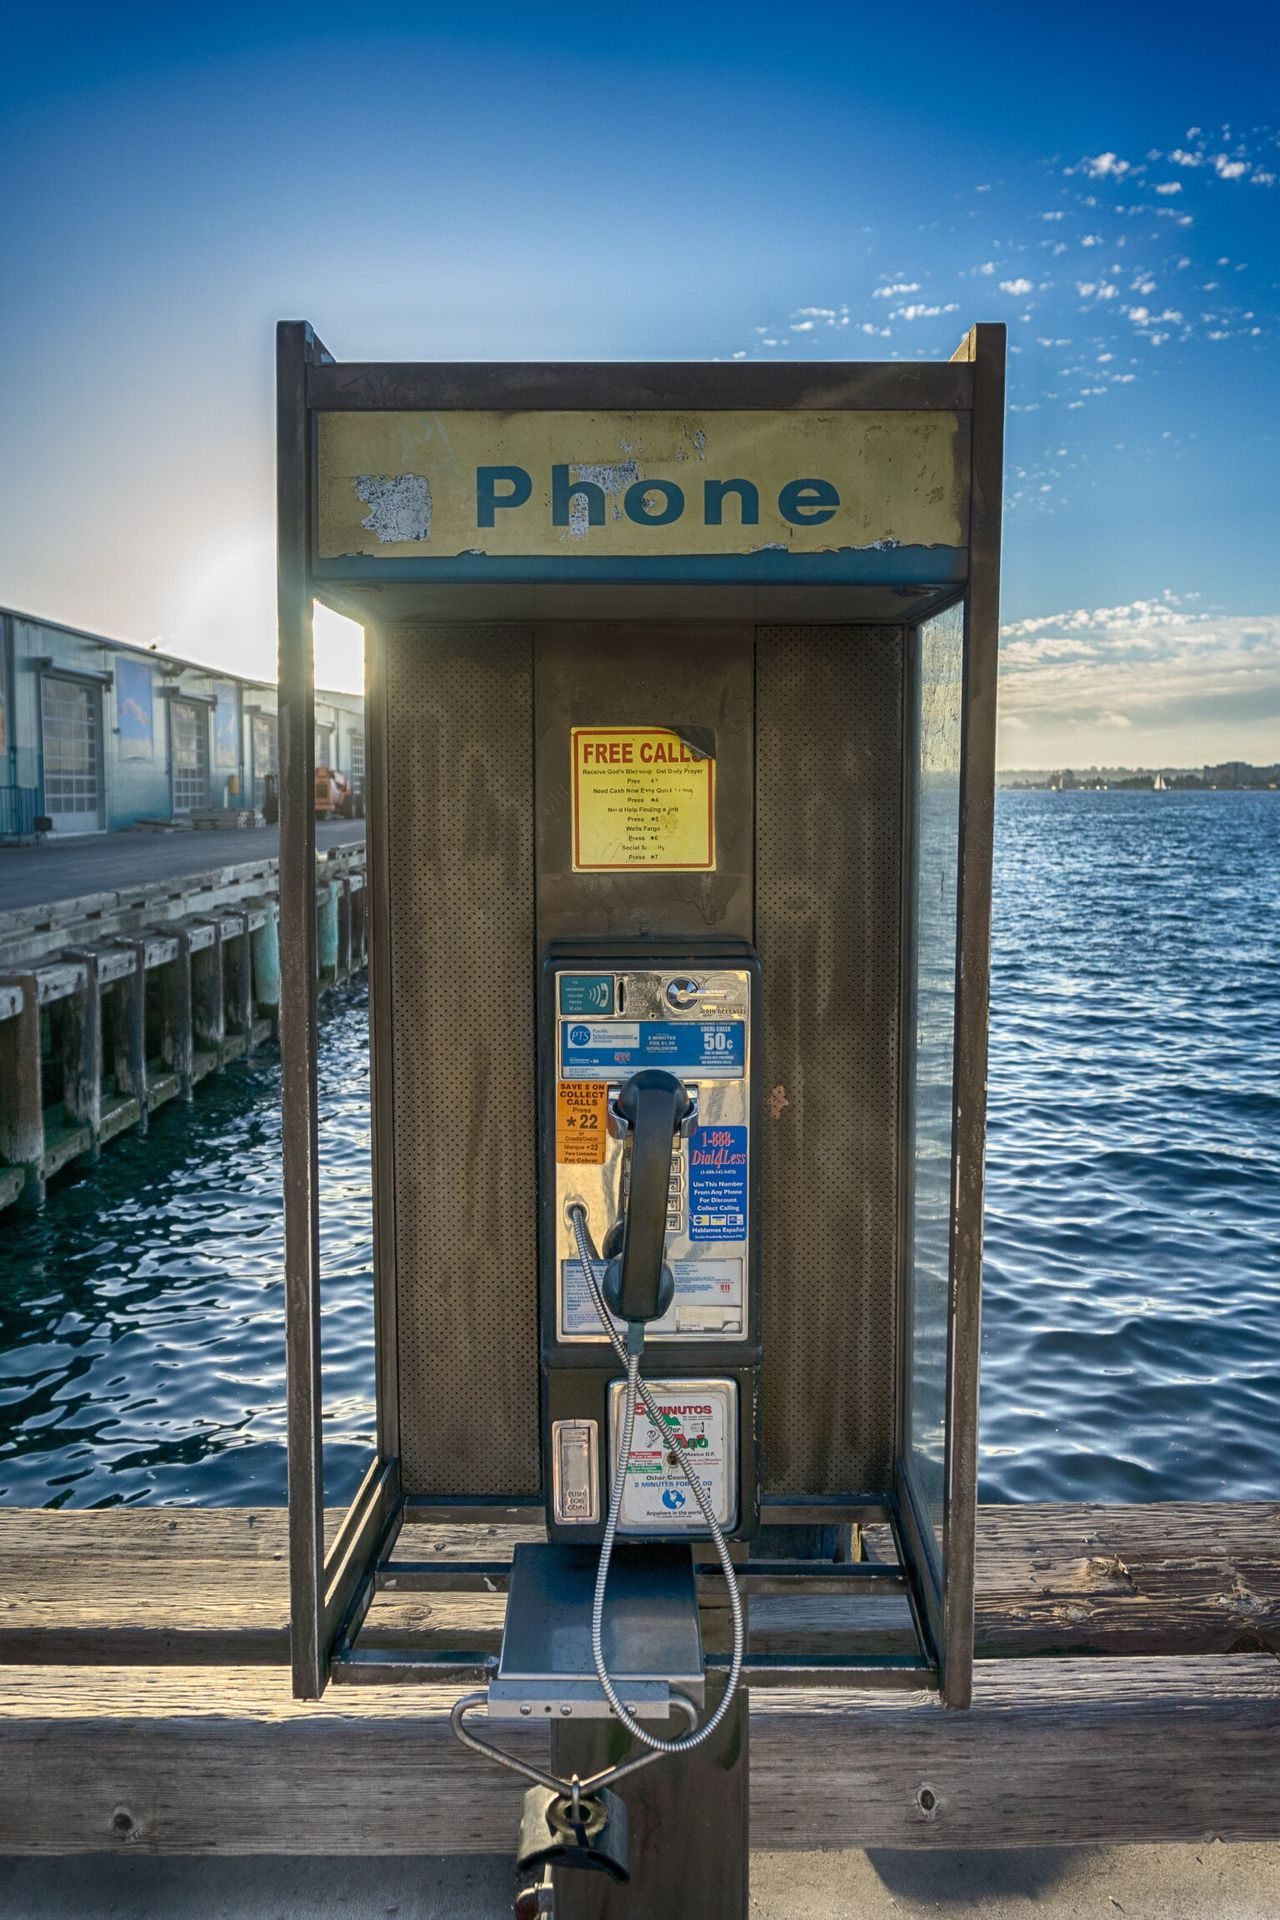 Text Communication Water Pier Sky Outdoors Day Nature No People Beauty In Nature Telephone Phone Photography Calling Bay Travel Destinations USAtrip USA On The Road San Diego California Dreaming California Love